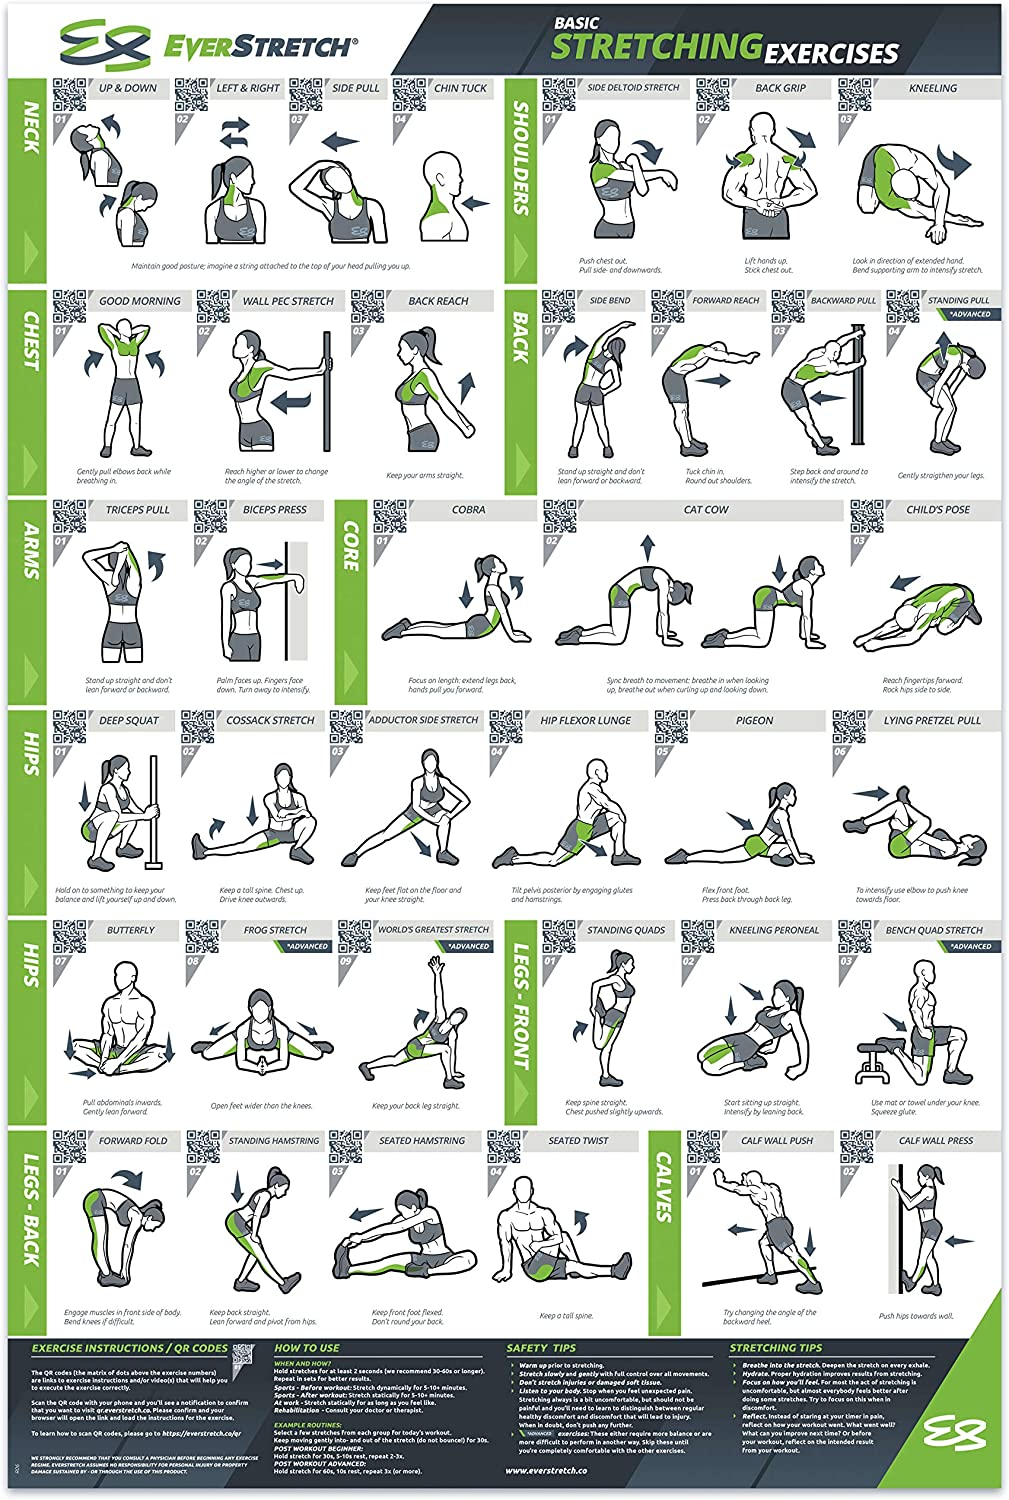 EverStretch Basic Stretching Poster for Home Gym - 24